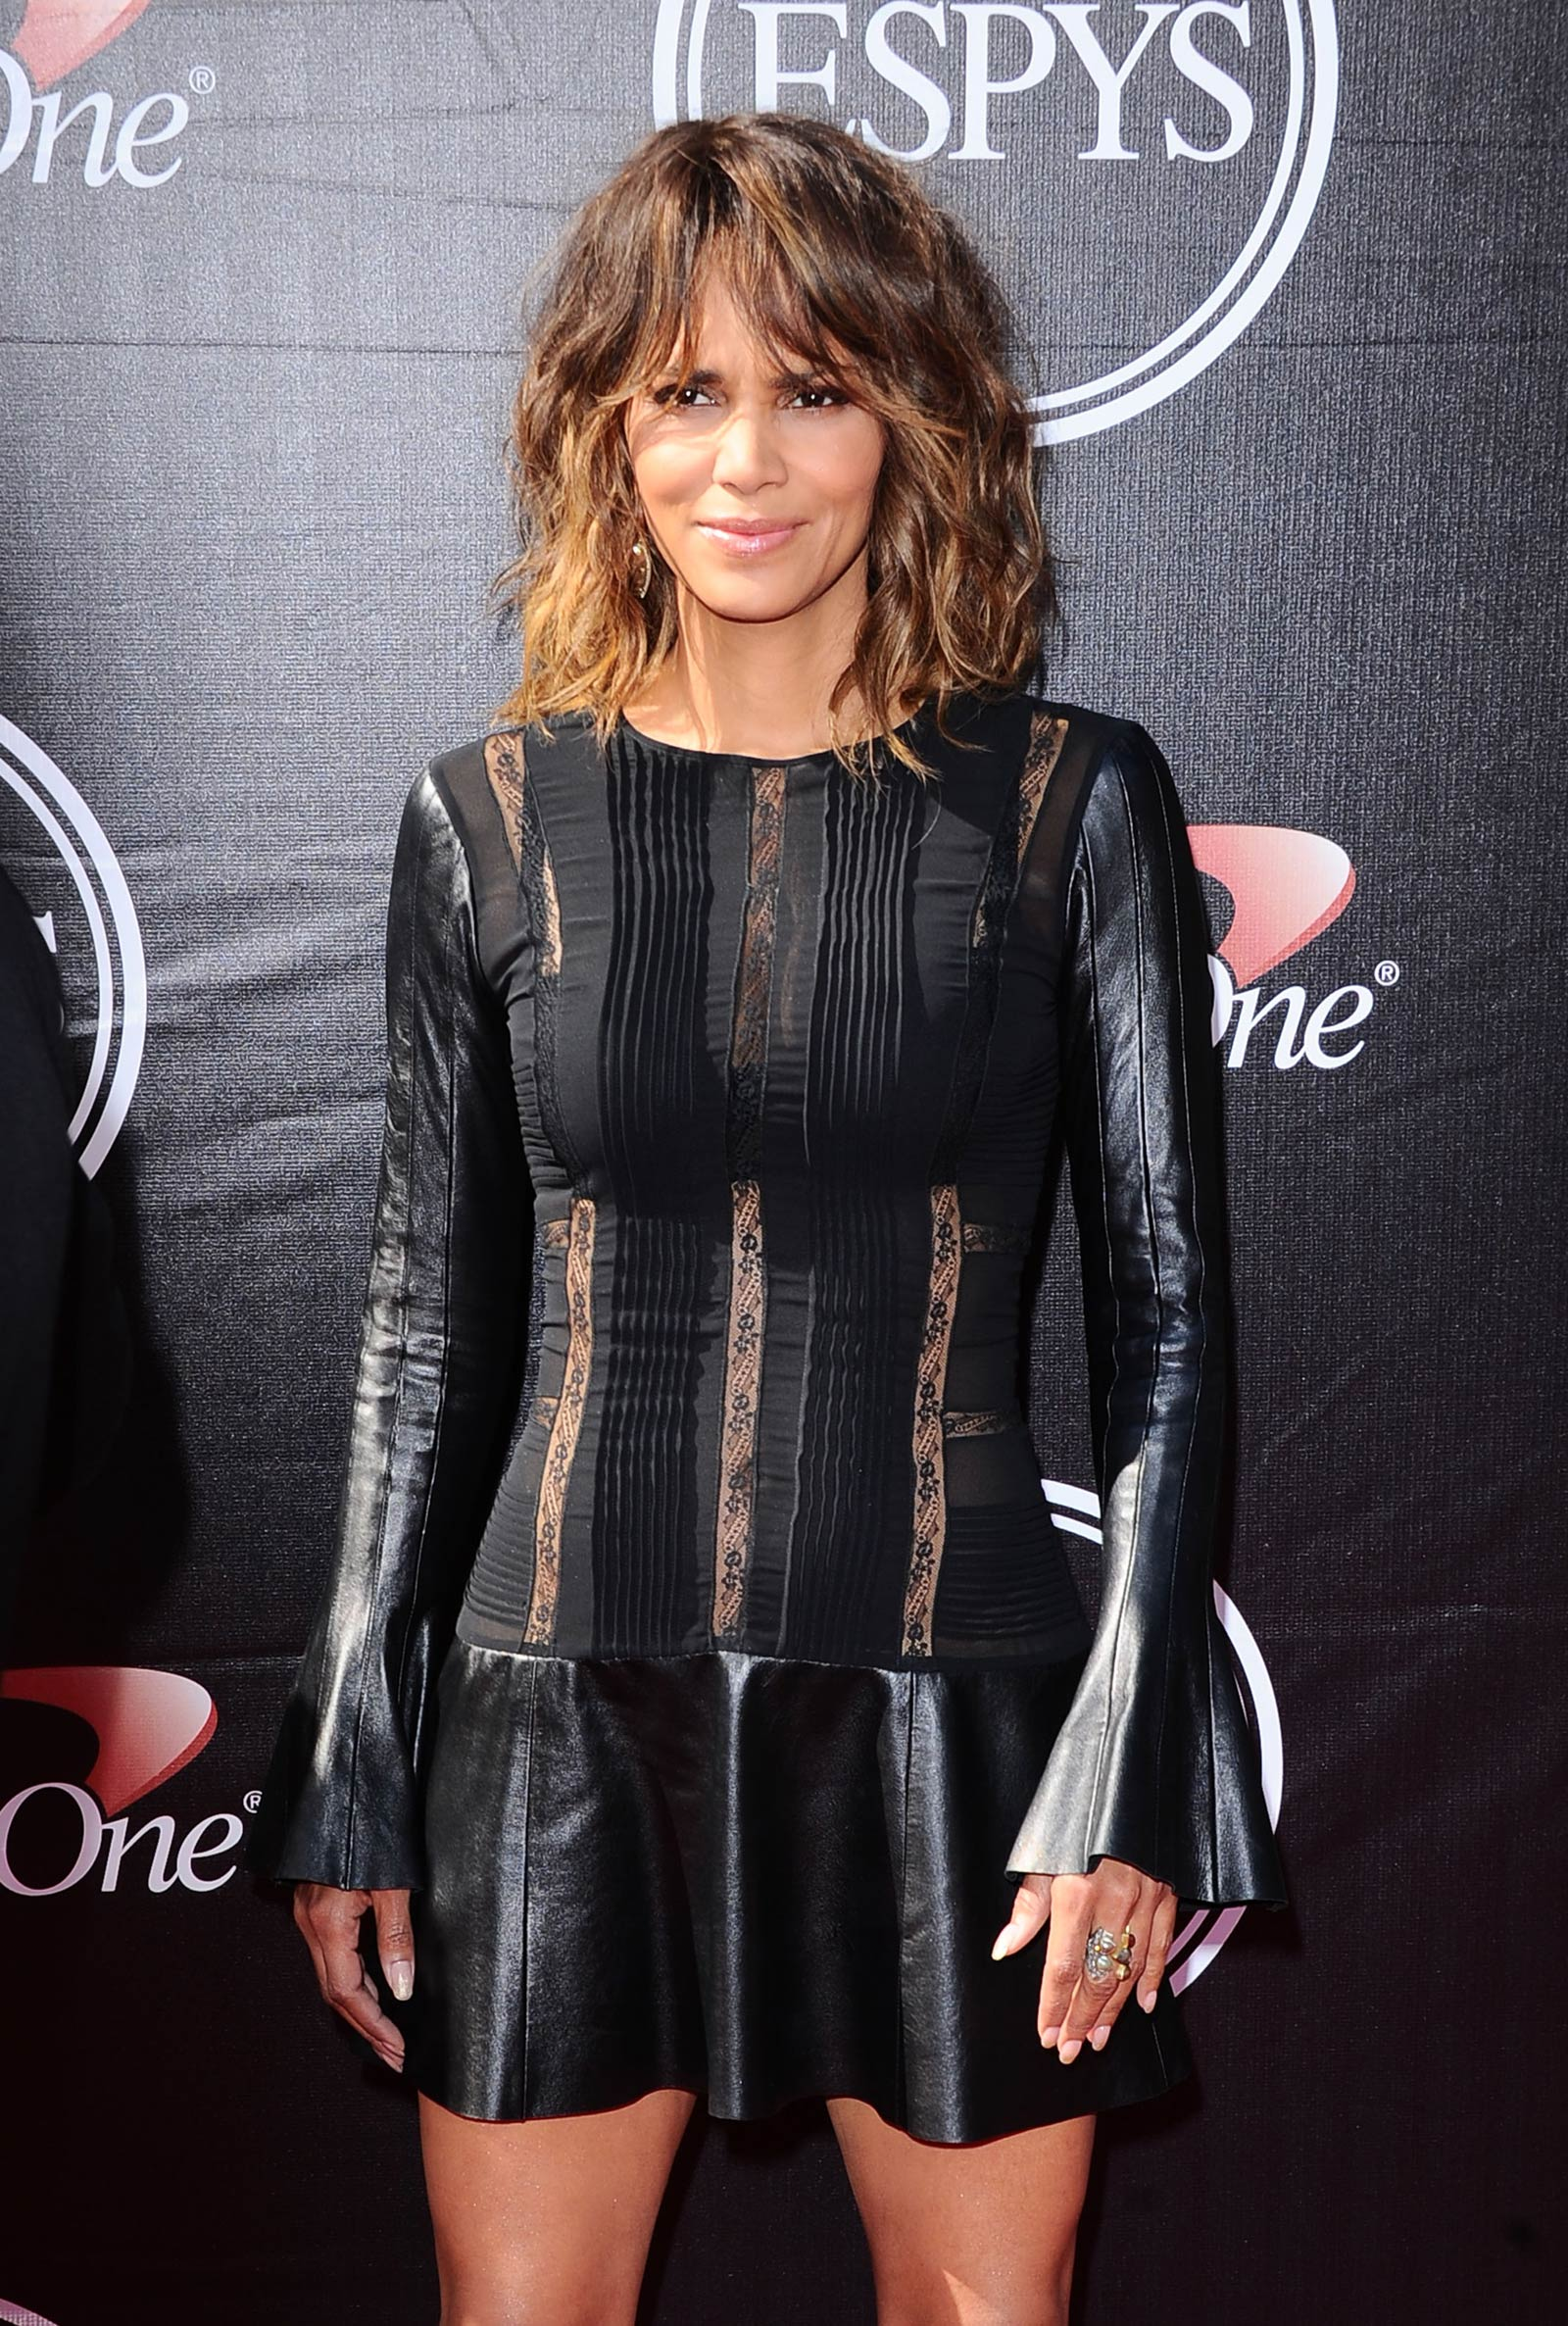 Halle Berry attends The 2015 ESPYS Halle Berry Twitter